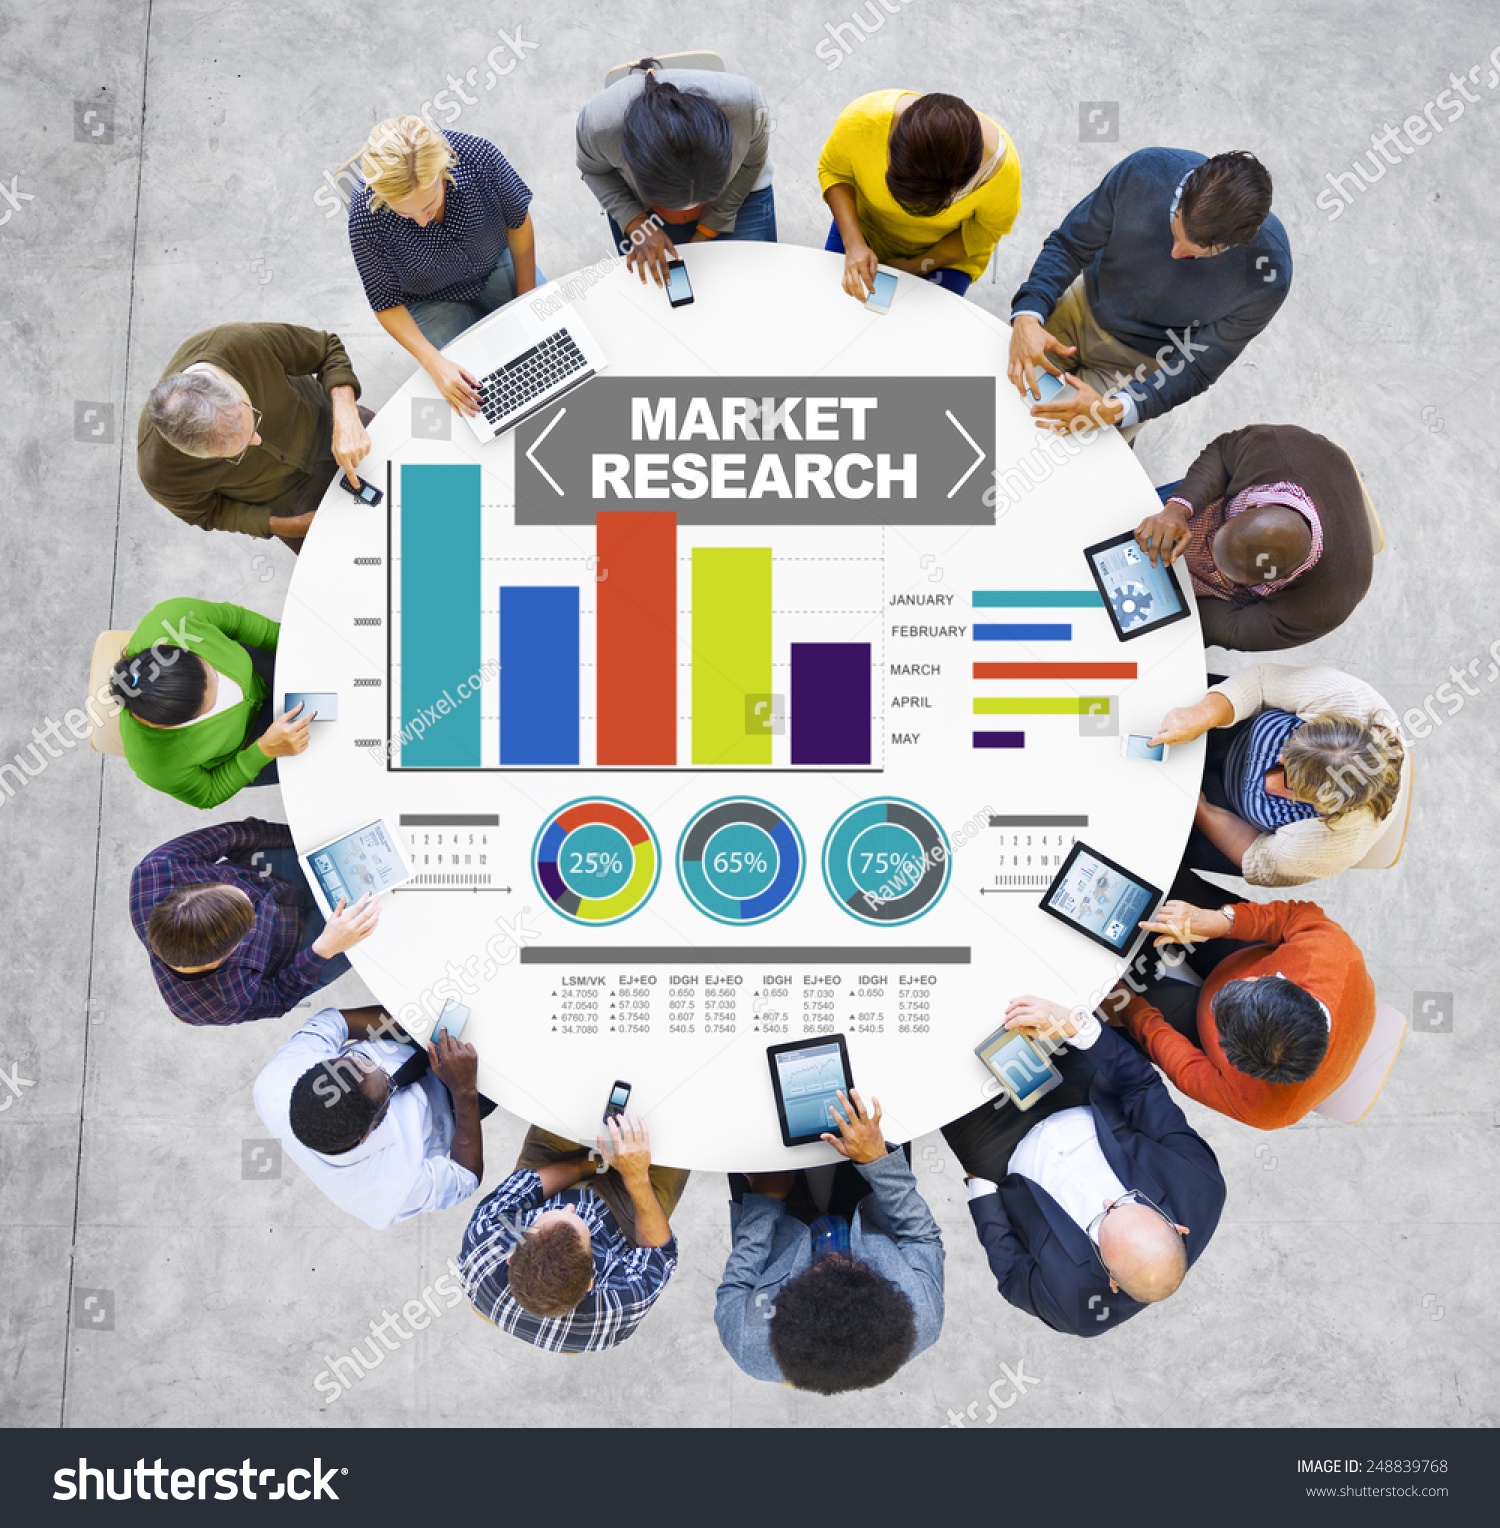 Market Research Business Percentage Research Marketing Stock Photo Stock Photo Market Research Business Percentage Research Marketing Strategy Concept  Stock Photo Market Research Business Percentage Research Marketing Strategy Concept